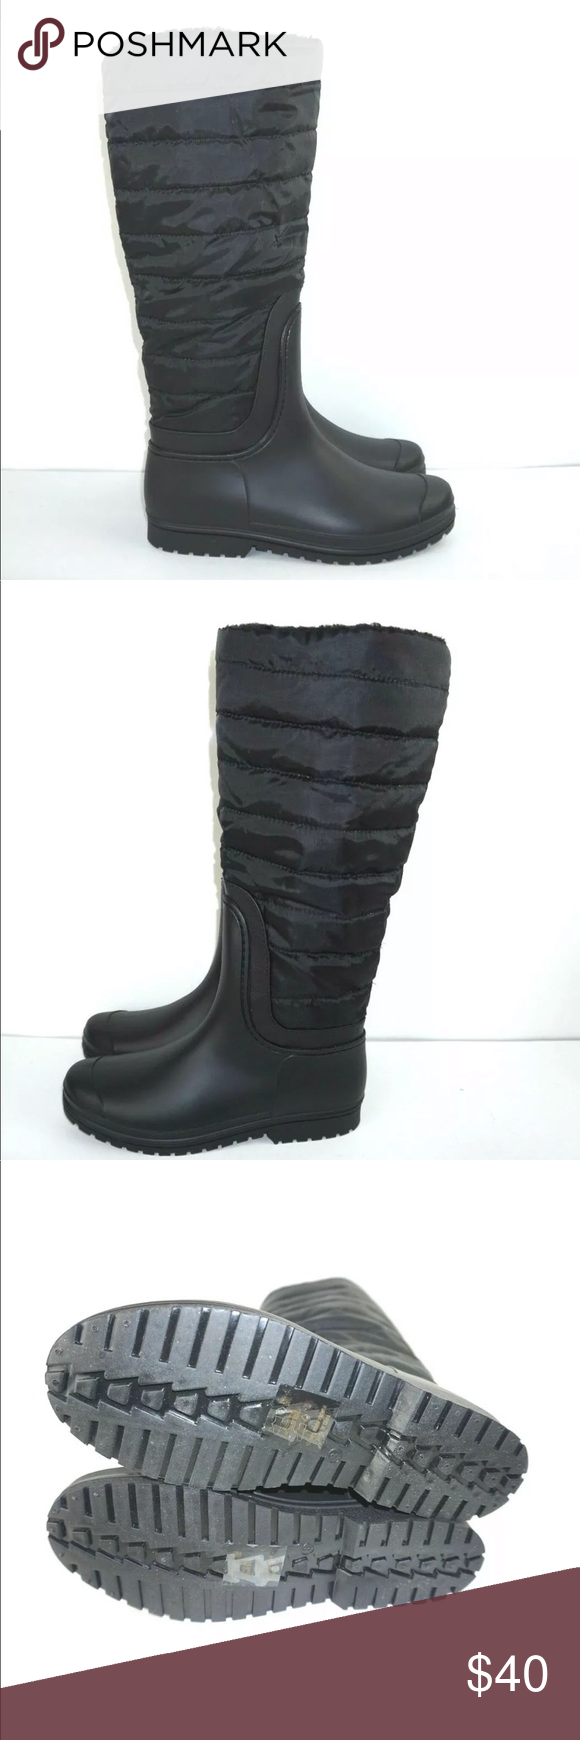 bf8c525972e Henry Ferrera Puffer Down Quilted Winter Boots Women s Knee-High Waterproof  Cold-Weather Fur Boots Crocodile or puffer quilted design Knee height Warm  ...